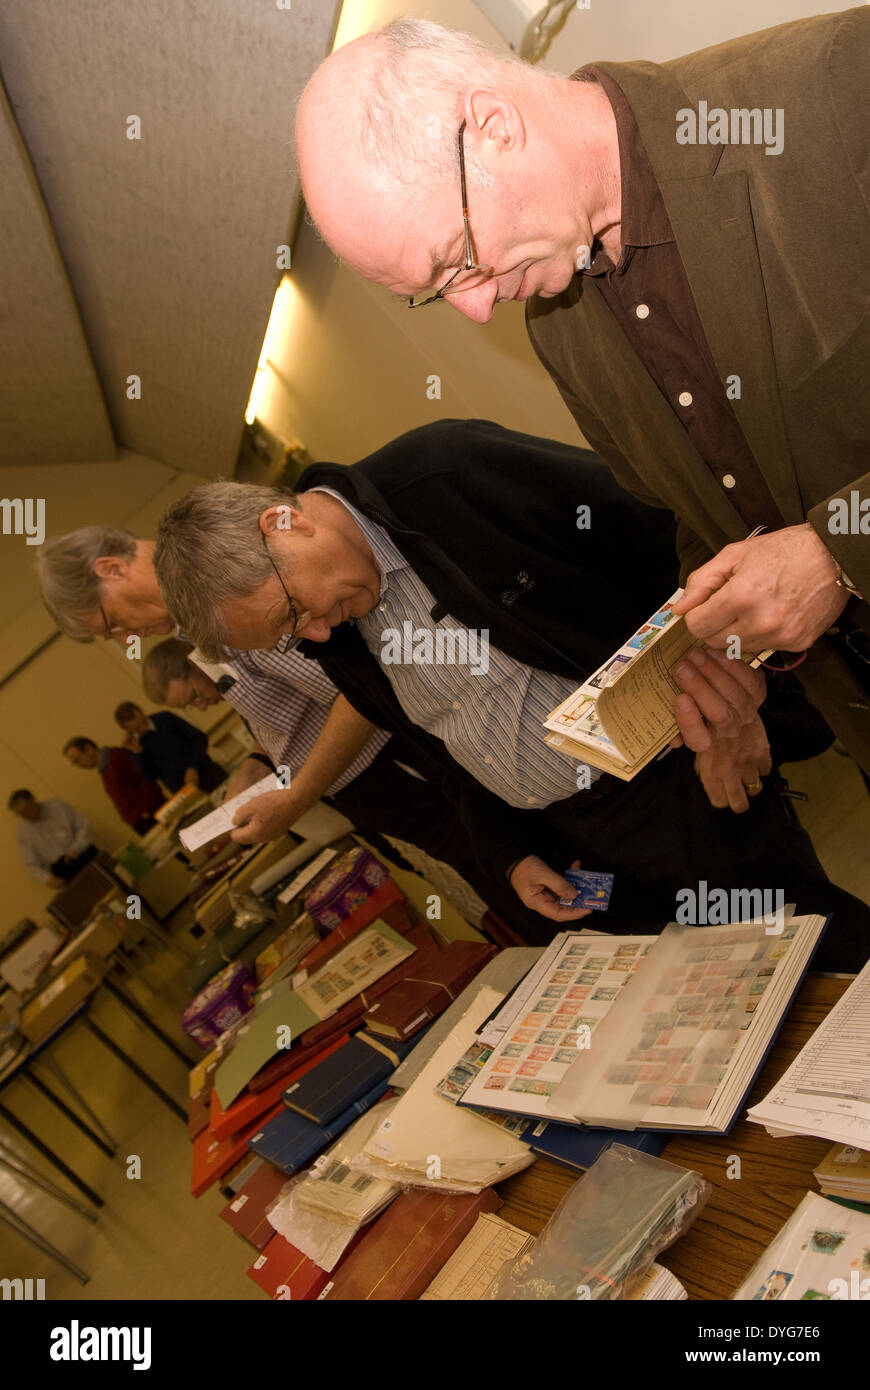 People attending a stamp auction, Petersfield, Hampshire, UK. - Stock Image